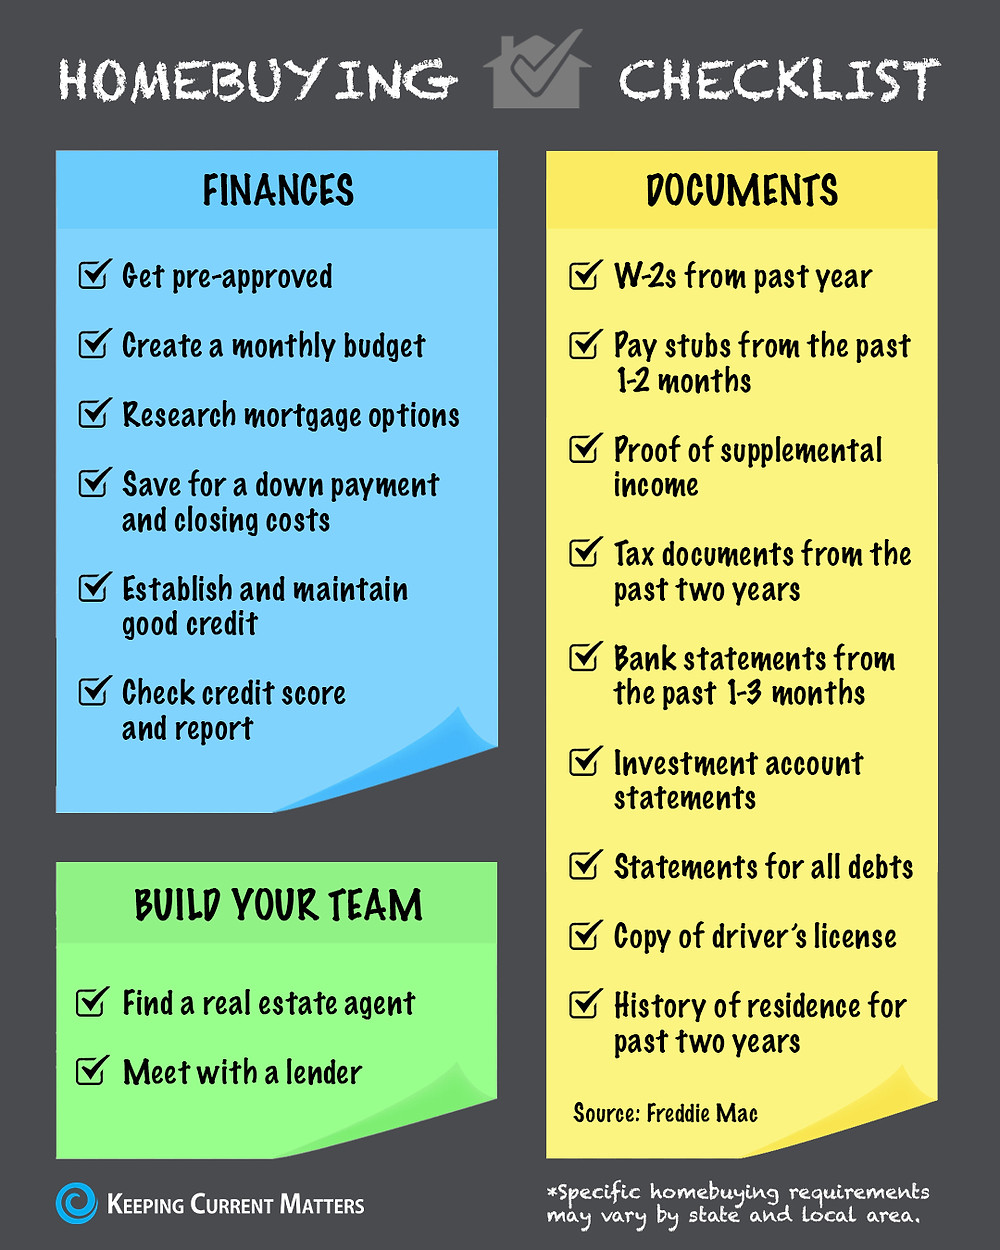 2020 Homebuying Checklist   Keeping Current Matters